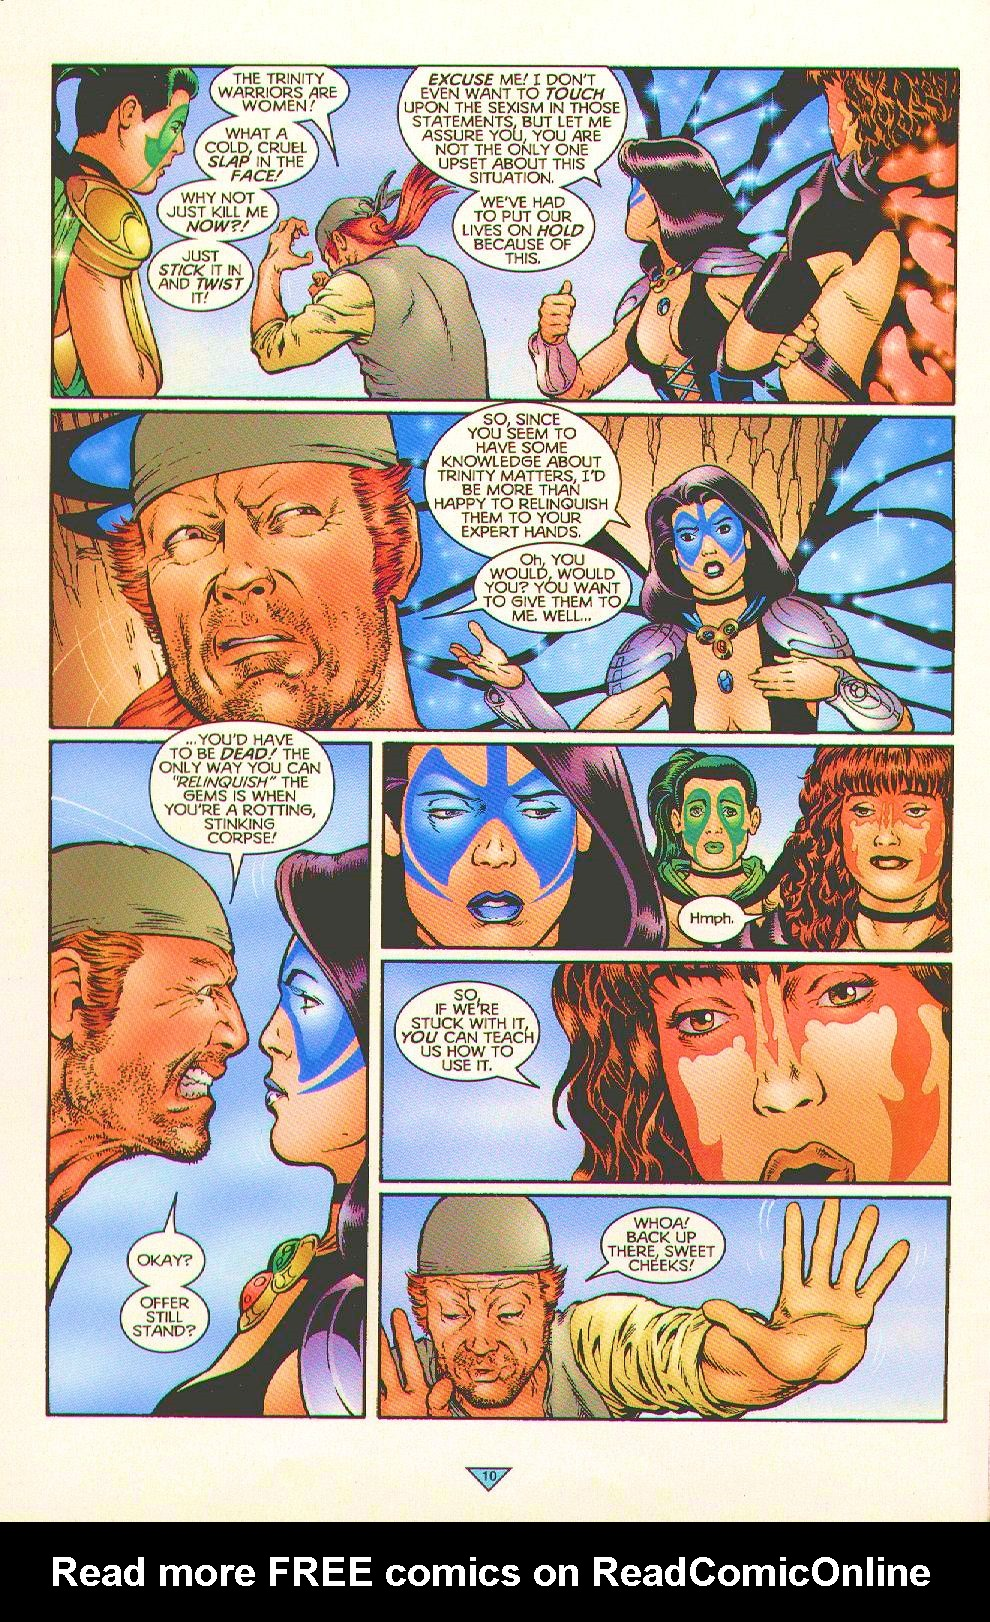 Read online Trinity Angels comic -  Issue #5 - 8